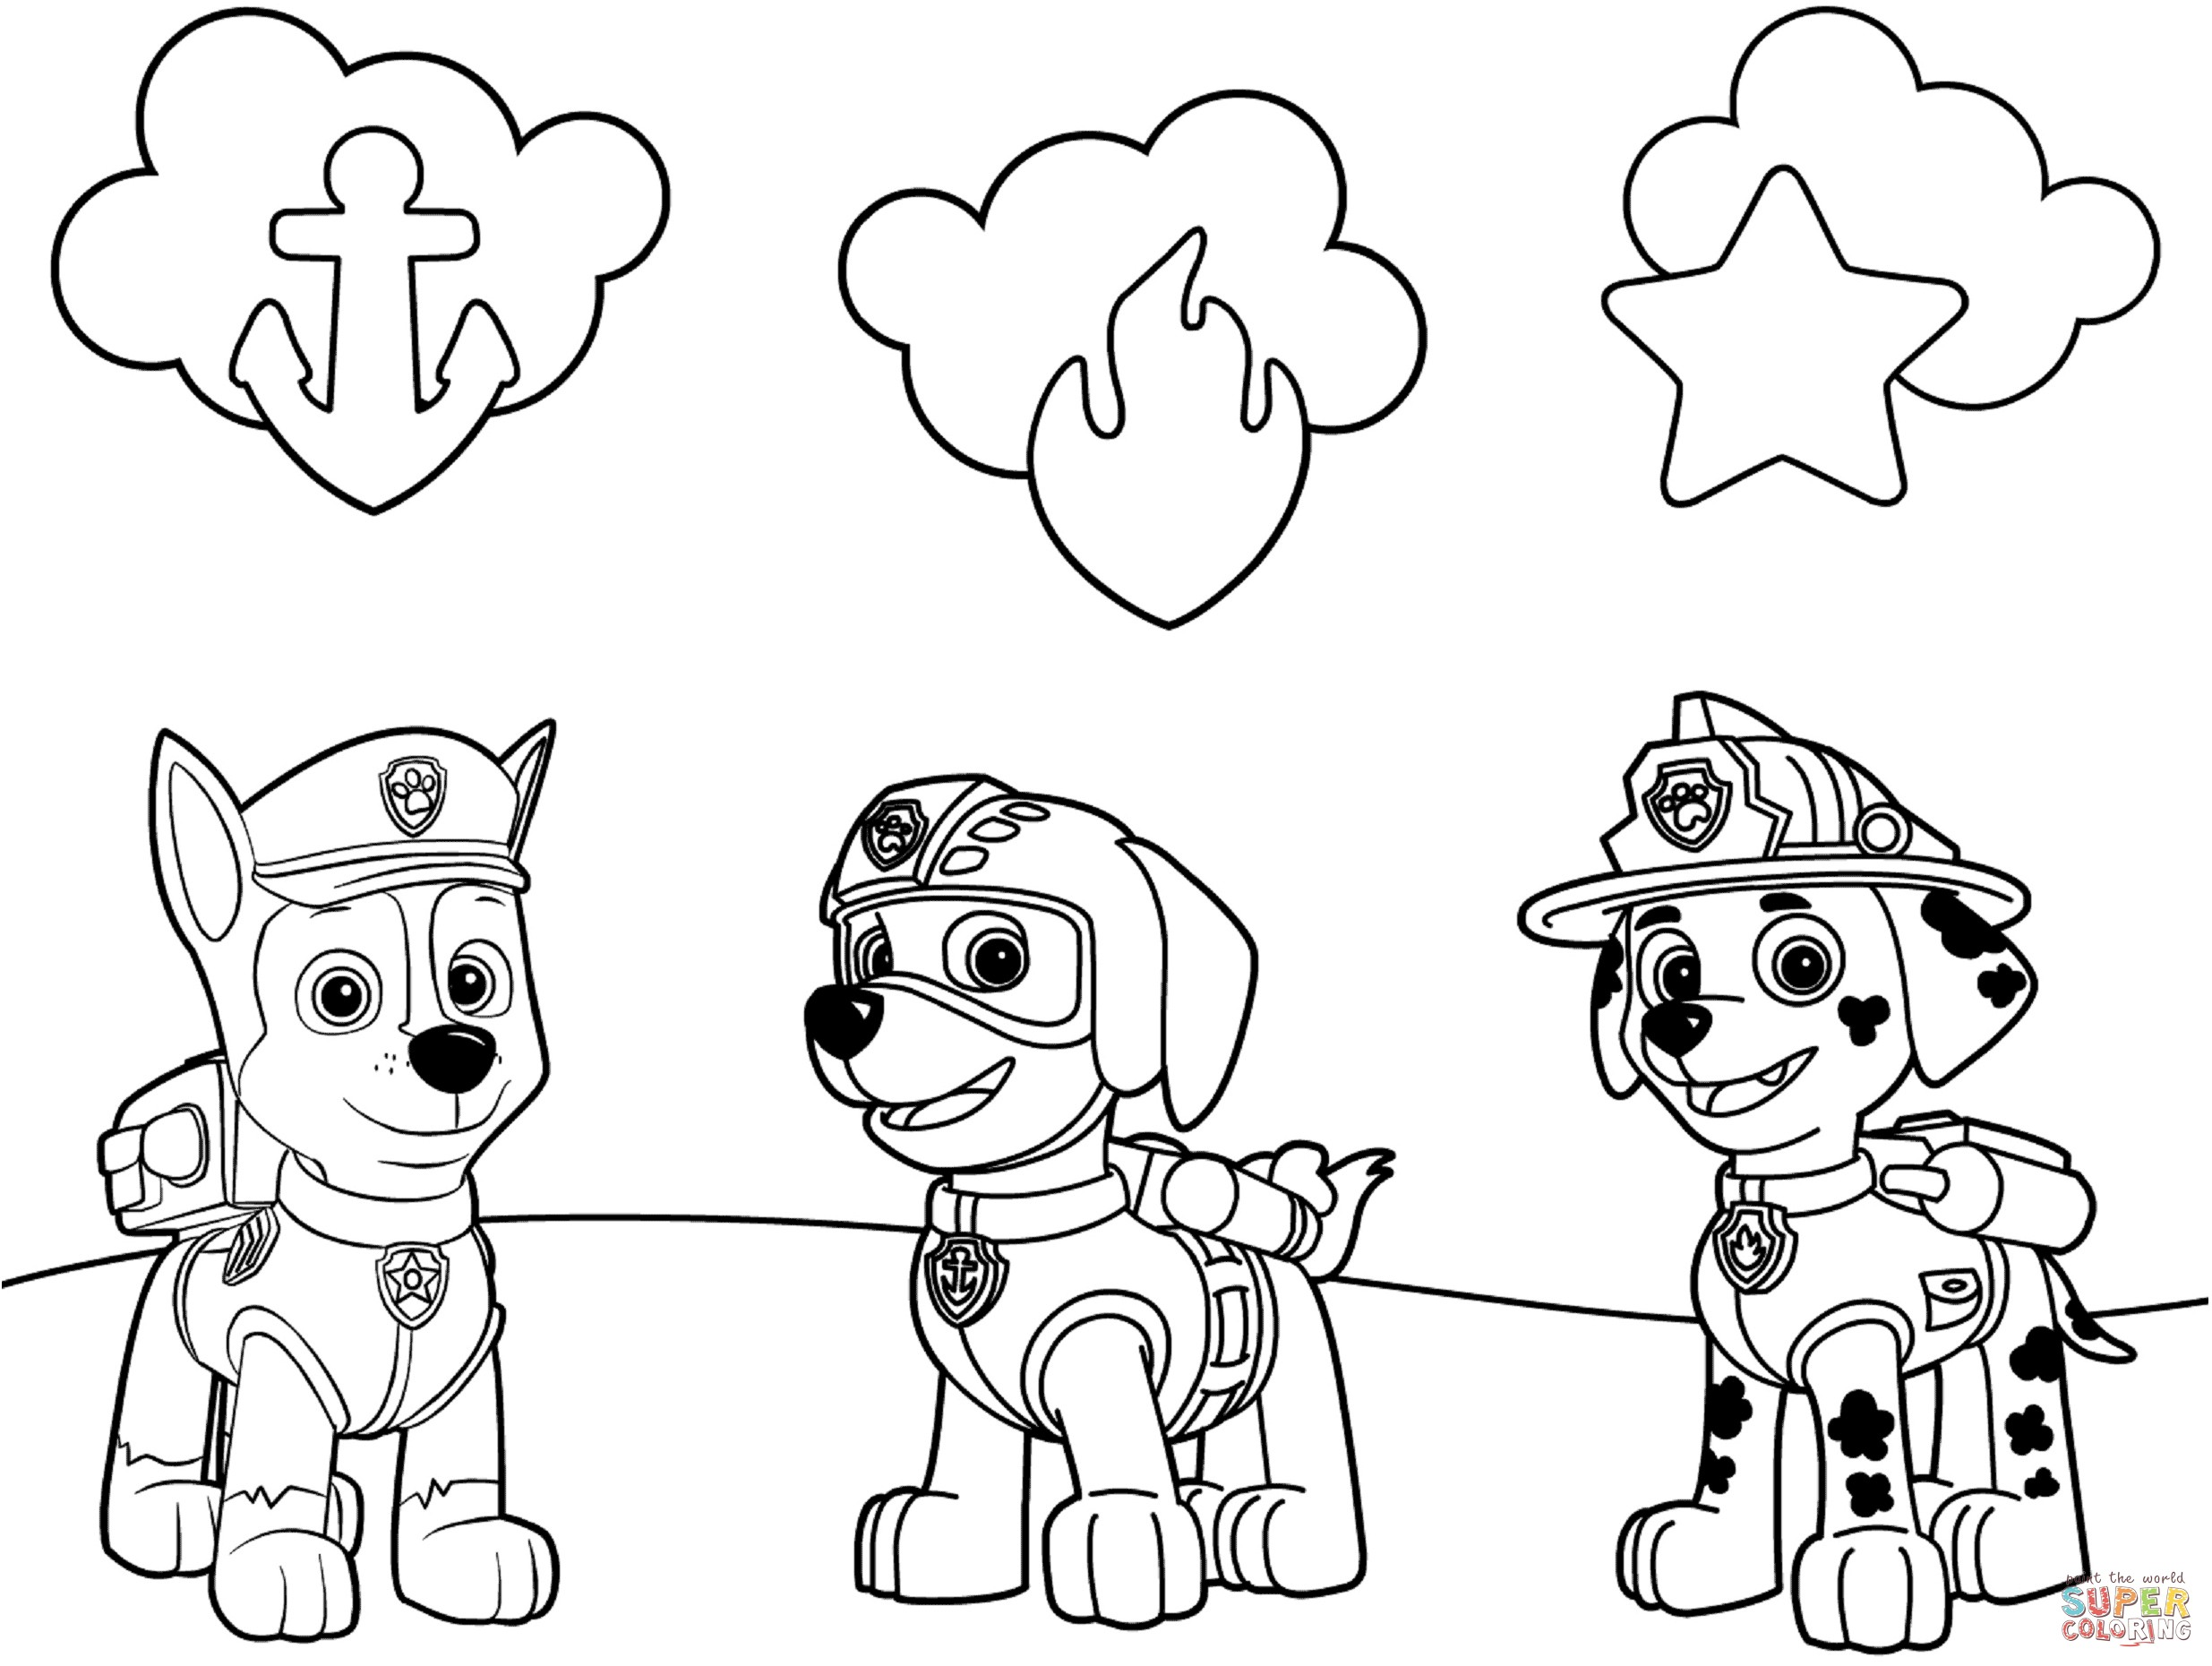 2470x1860 Blaze Coloring Pages Free Printable Coloring Pages Paw Patrol